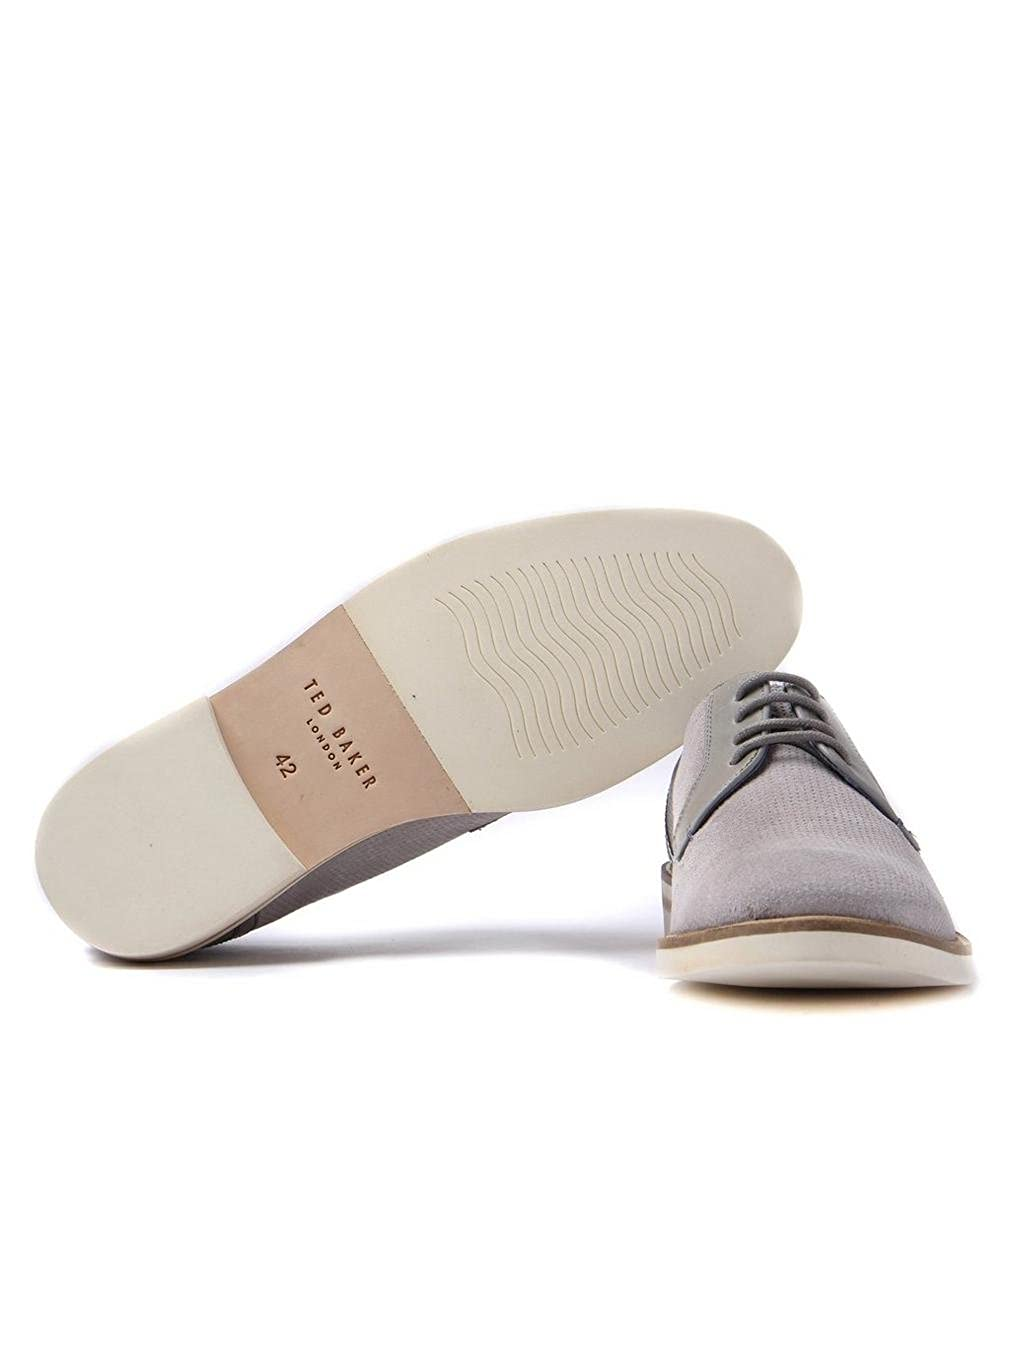 43745bf49c3970 Ted Baker Men s Siablo Perforated Suede Derby Shoes - Light Grey ...